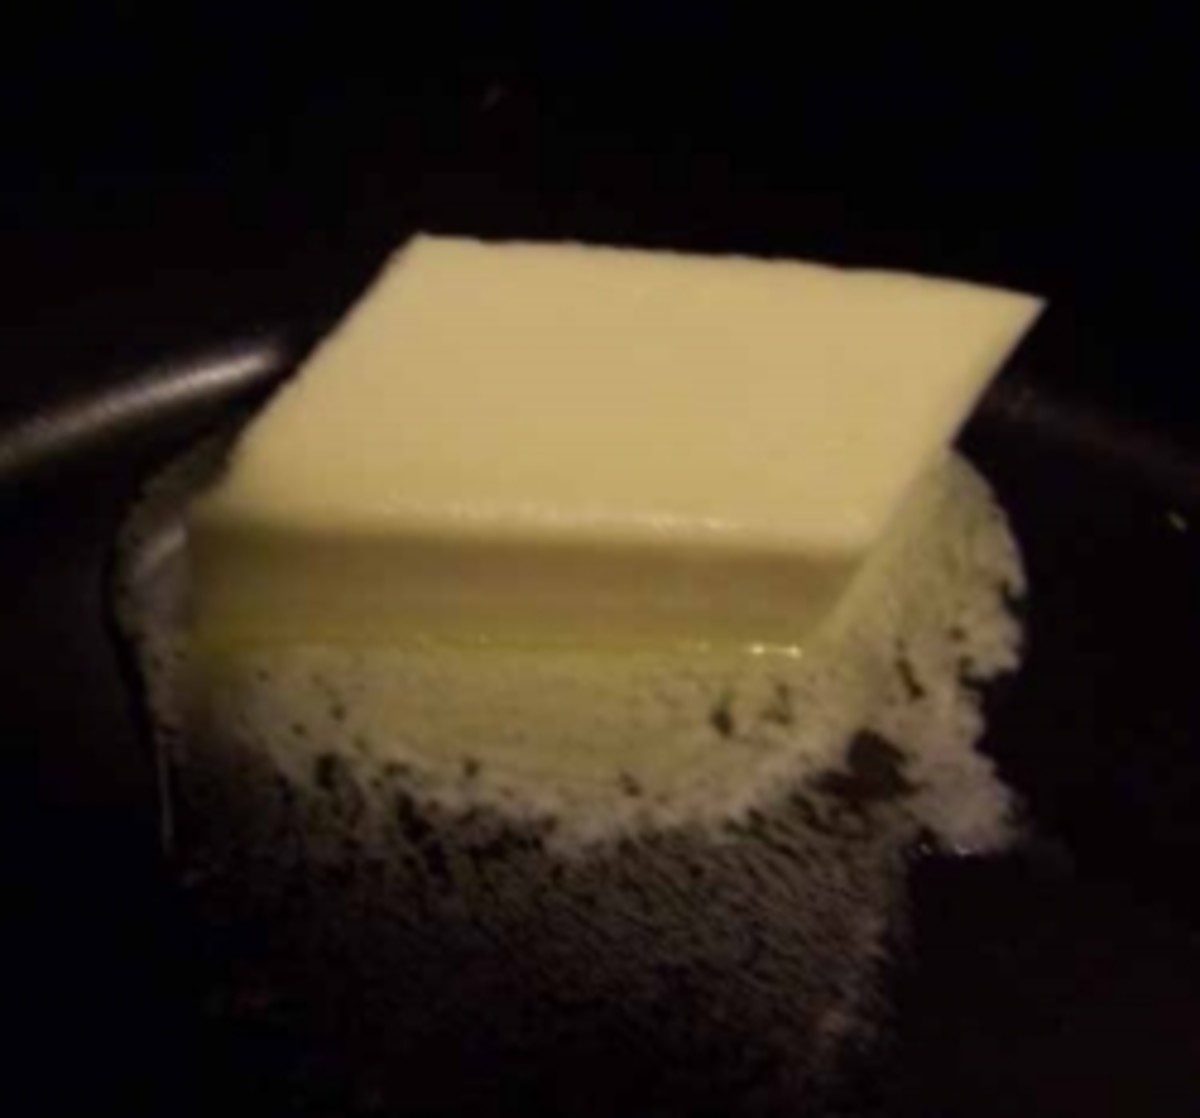 Melting butter in a pan